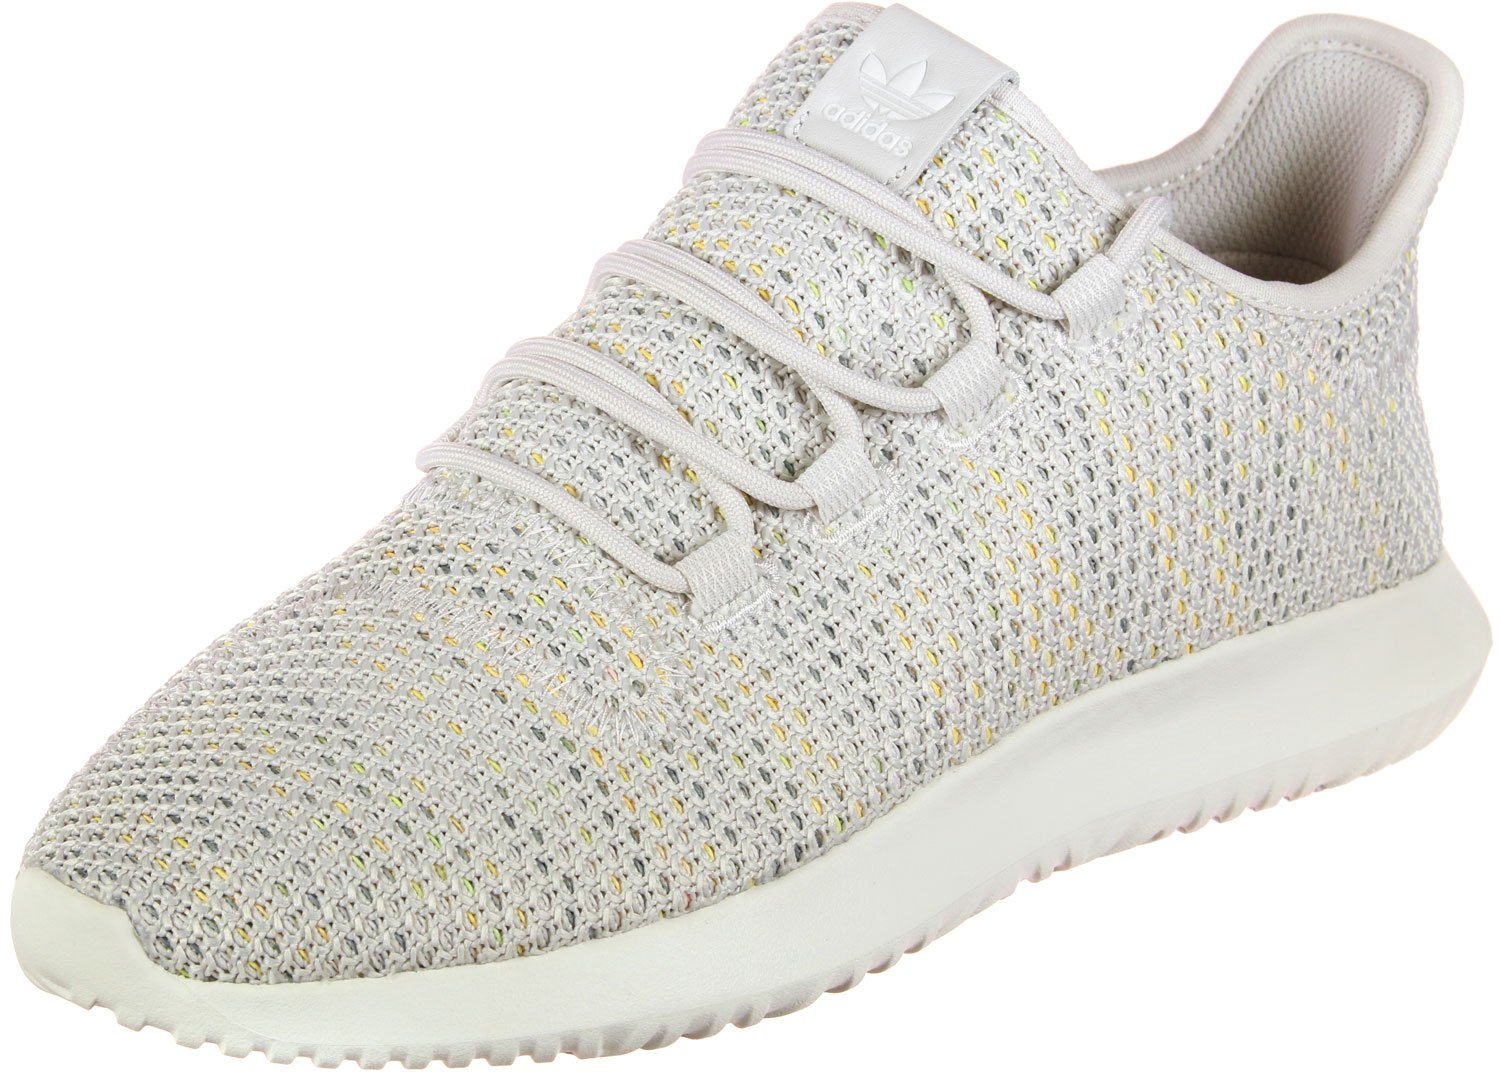 low priced e4761 178c7 adidas Tubular Shadow CK, Scarpe da Fitness Uomo – Spesavip